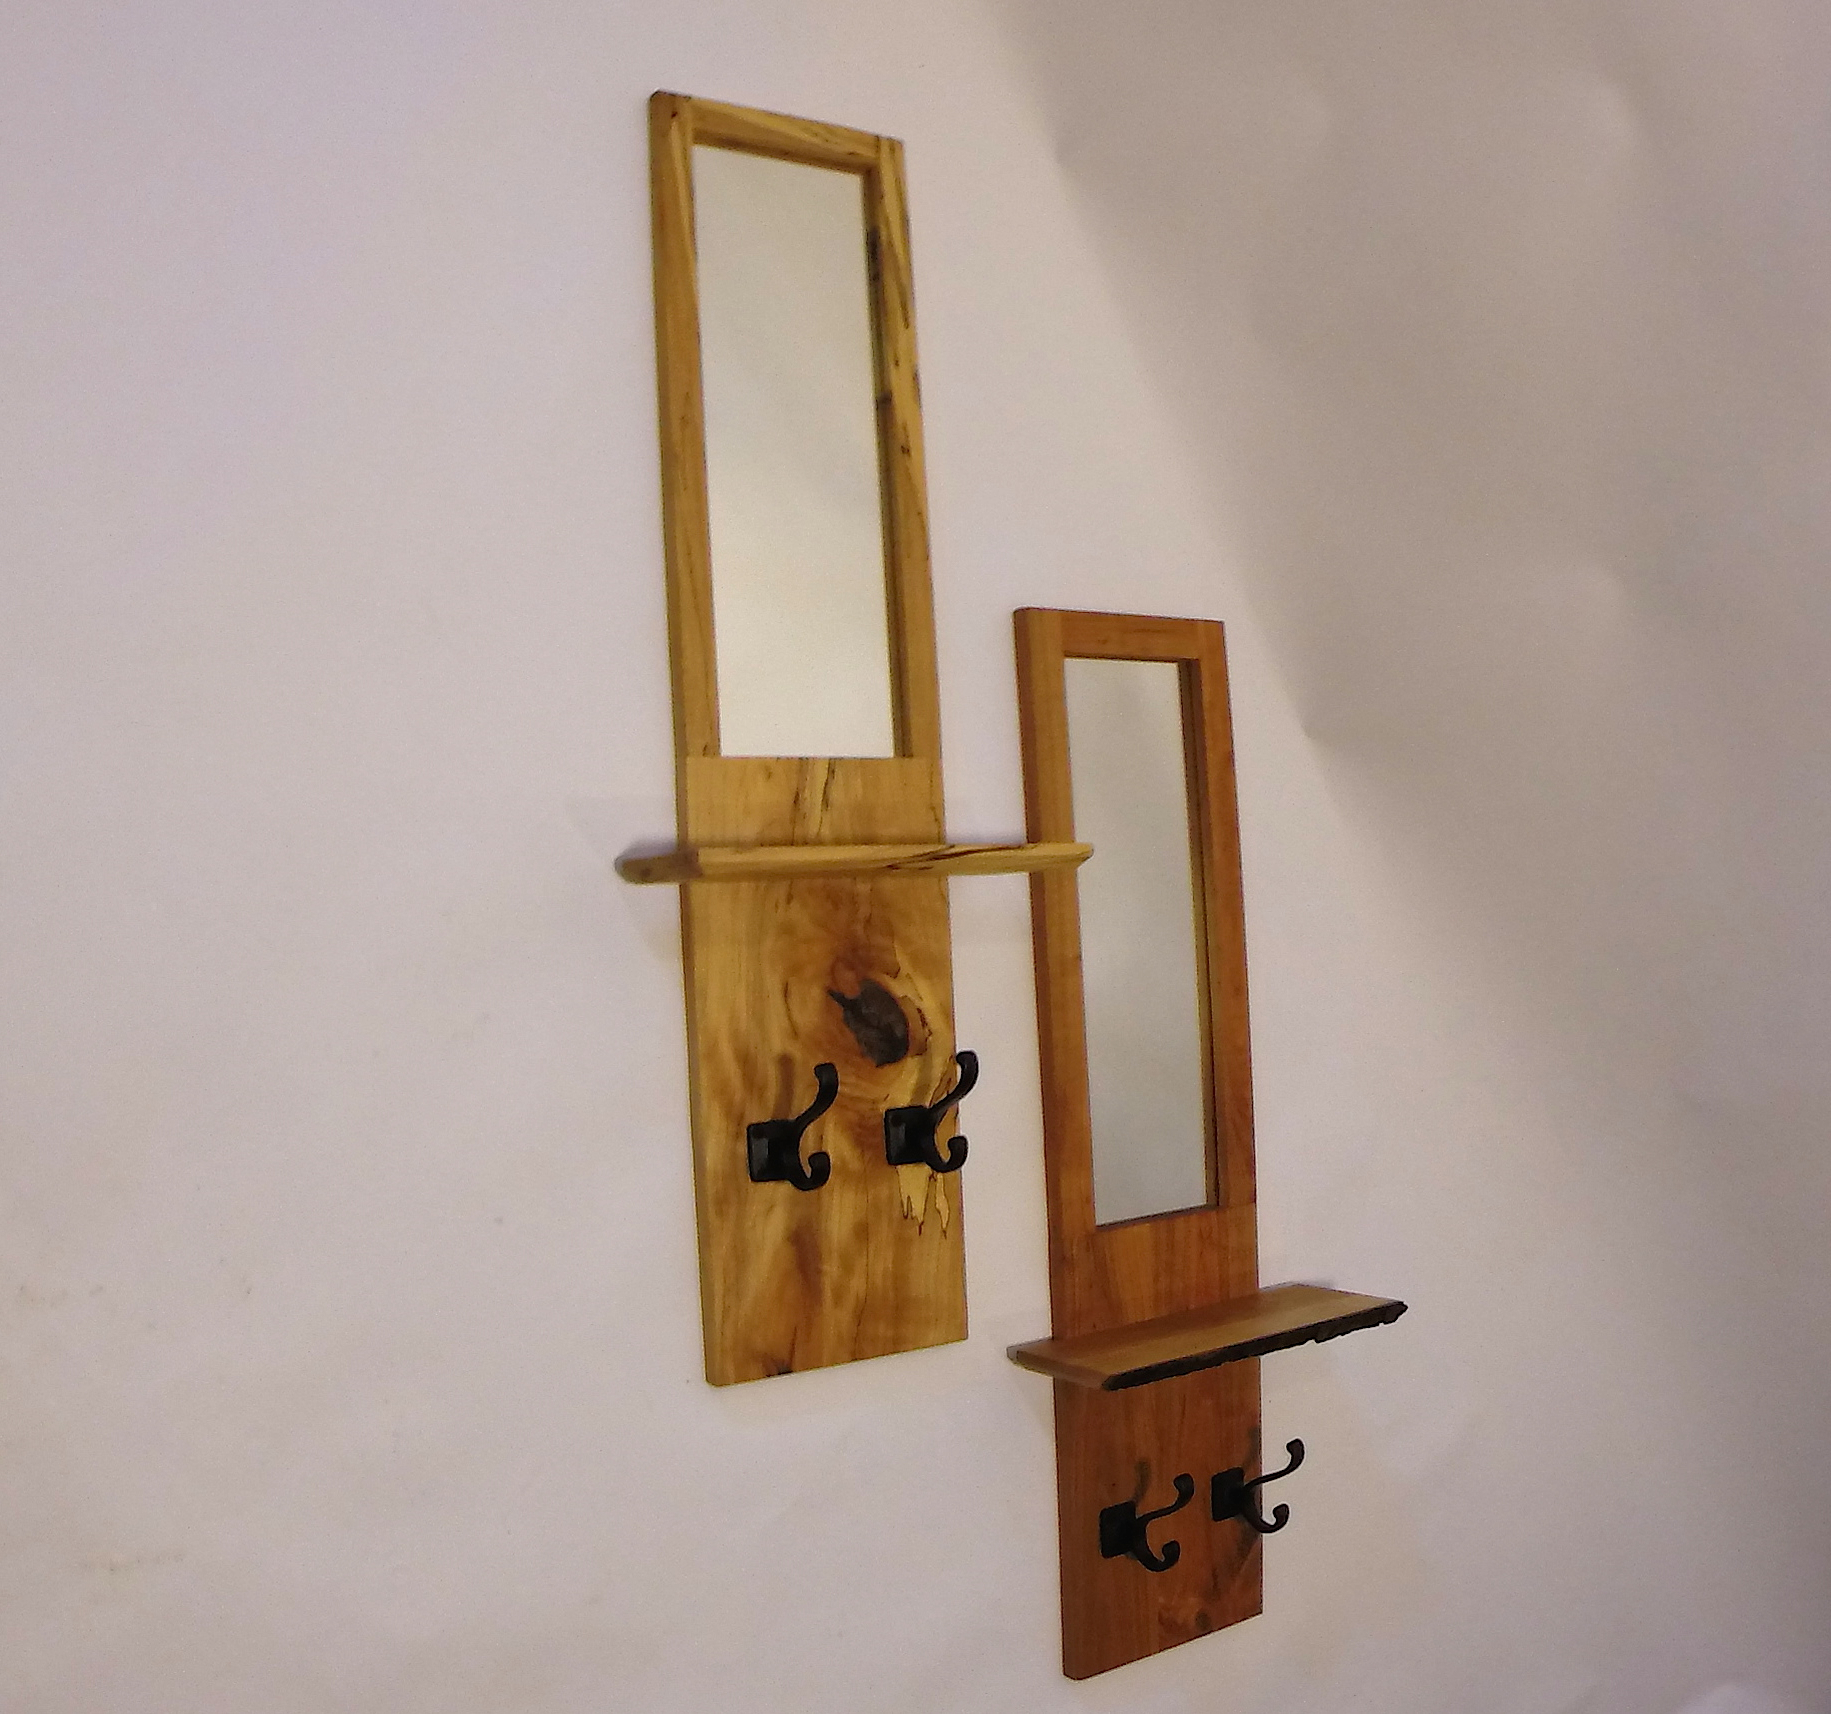 Wall Mirrors With Hooks With Regard To Preferred Wall Mirrors With Shelves And Hooks – Dwyer Wood (View 16 of 20)